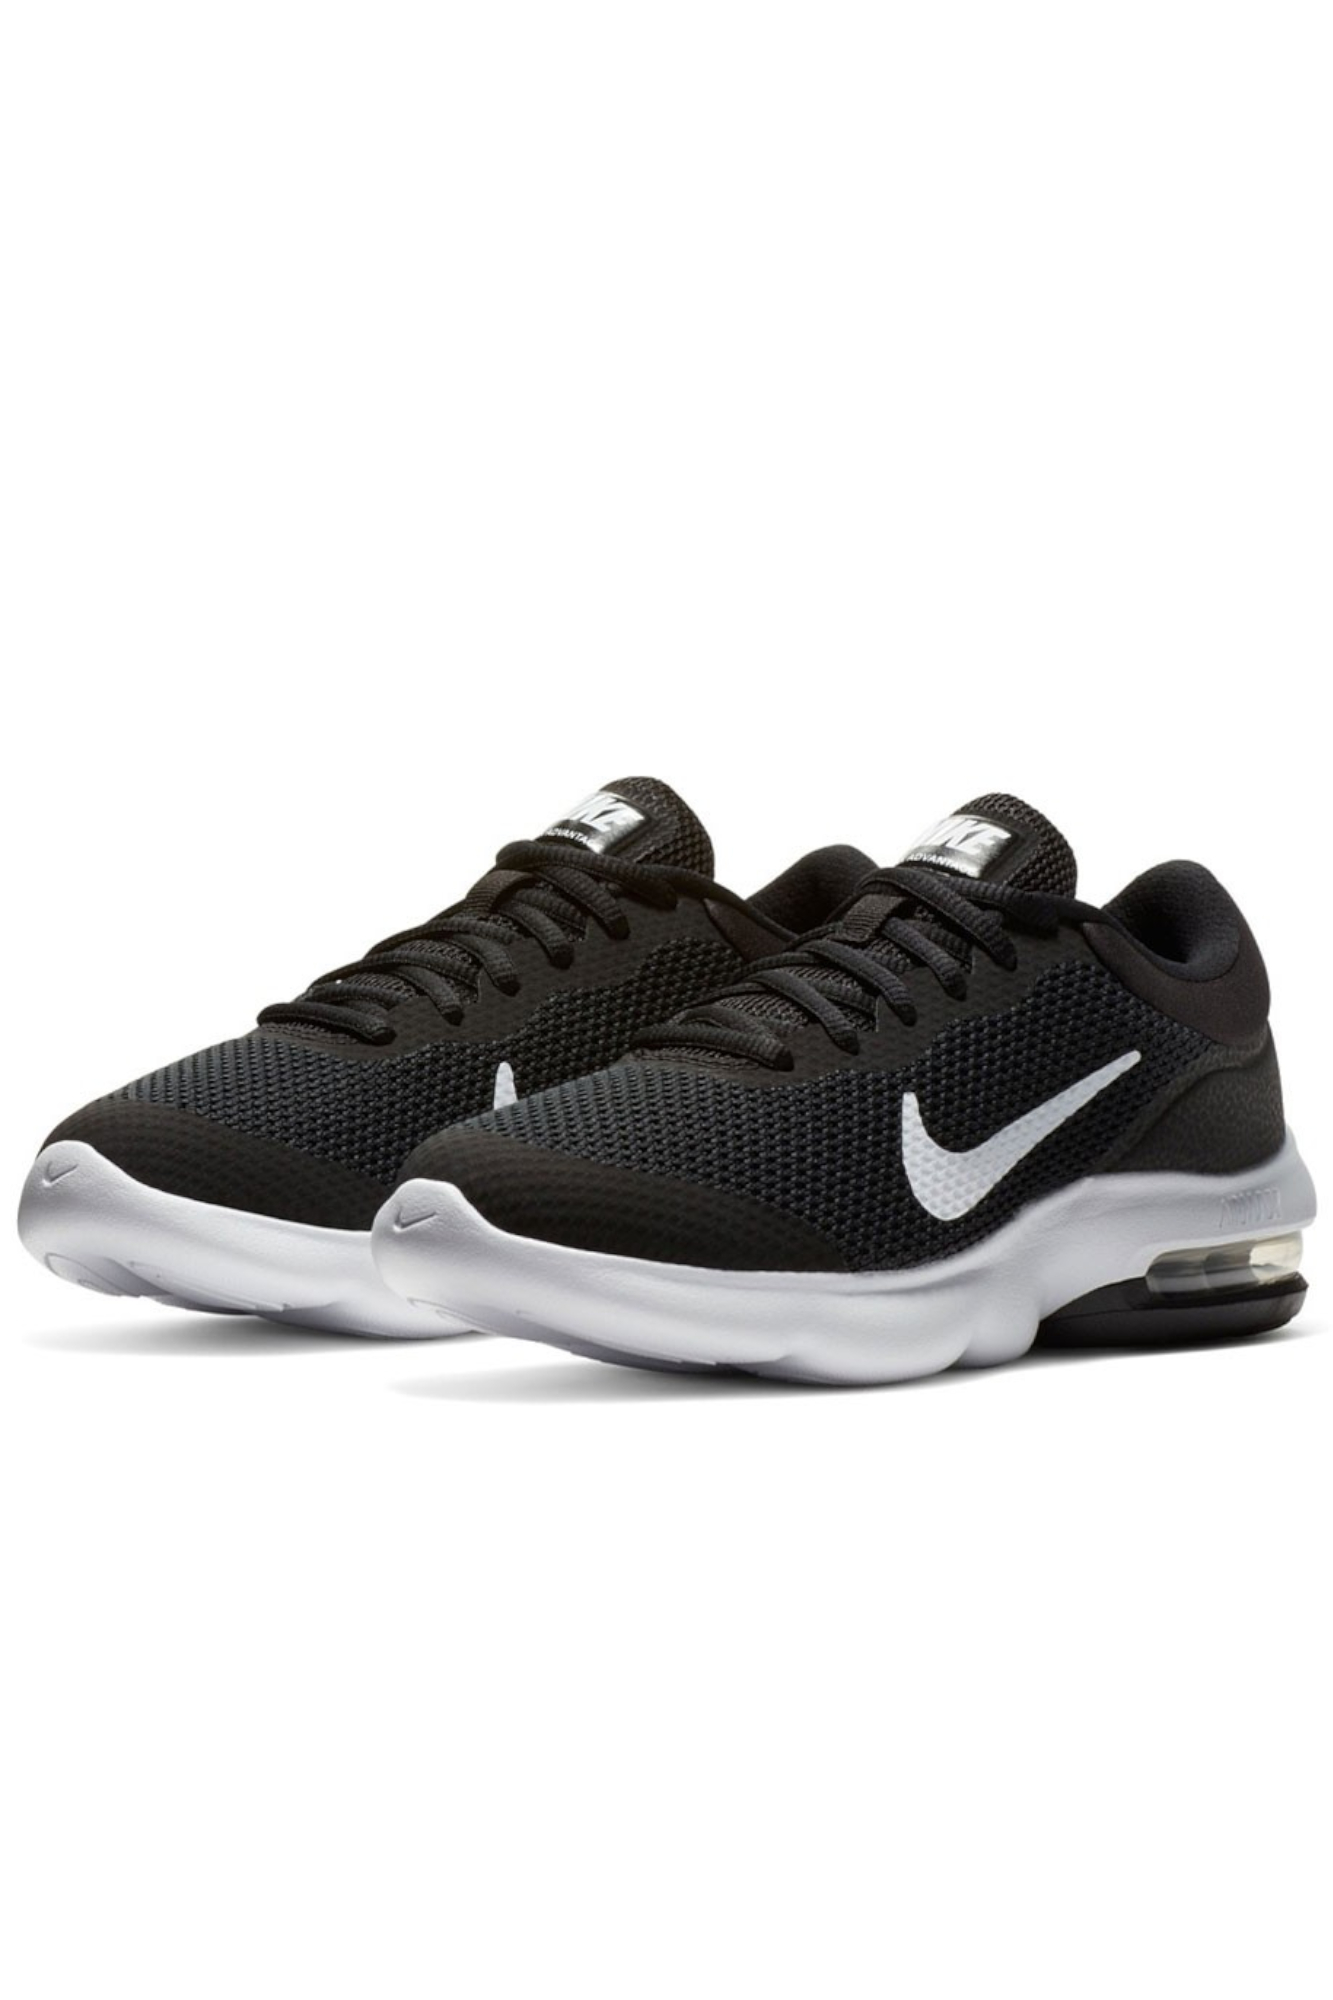 Buty Nike Air Max Advantage 908991 001 Do biegania